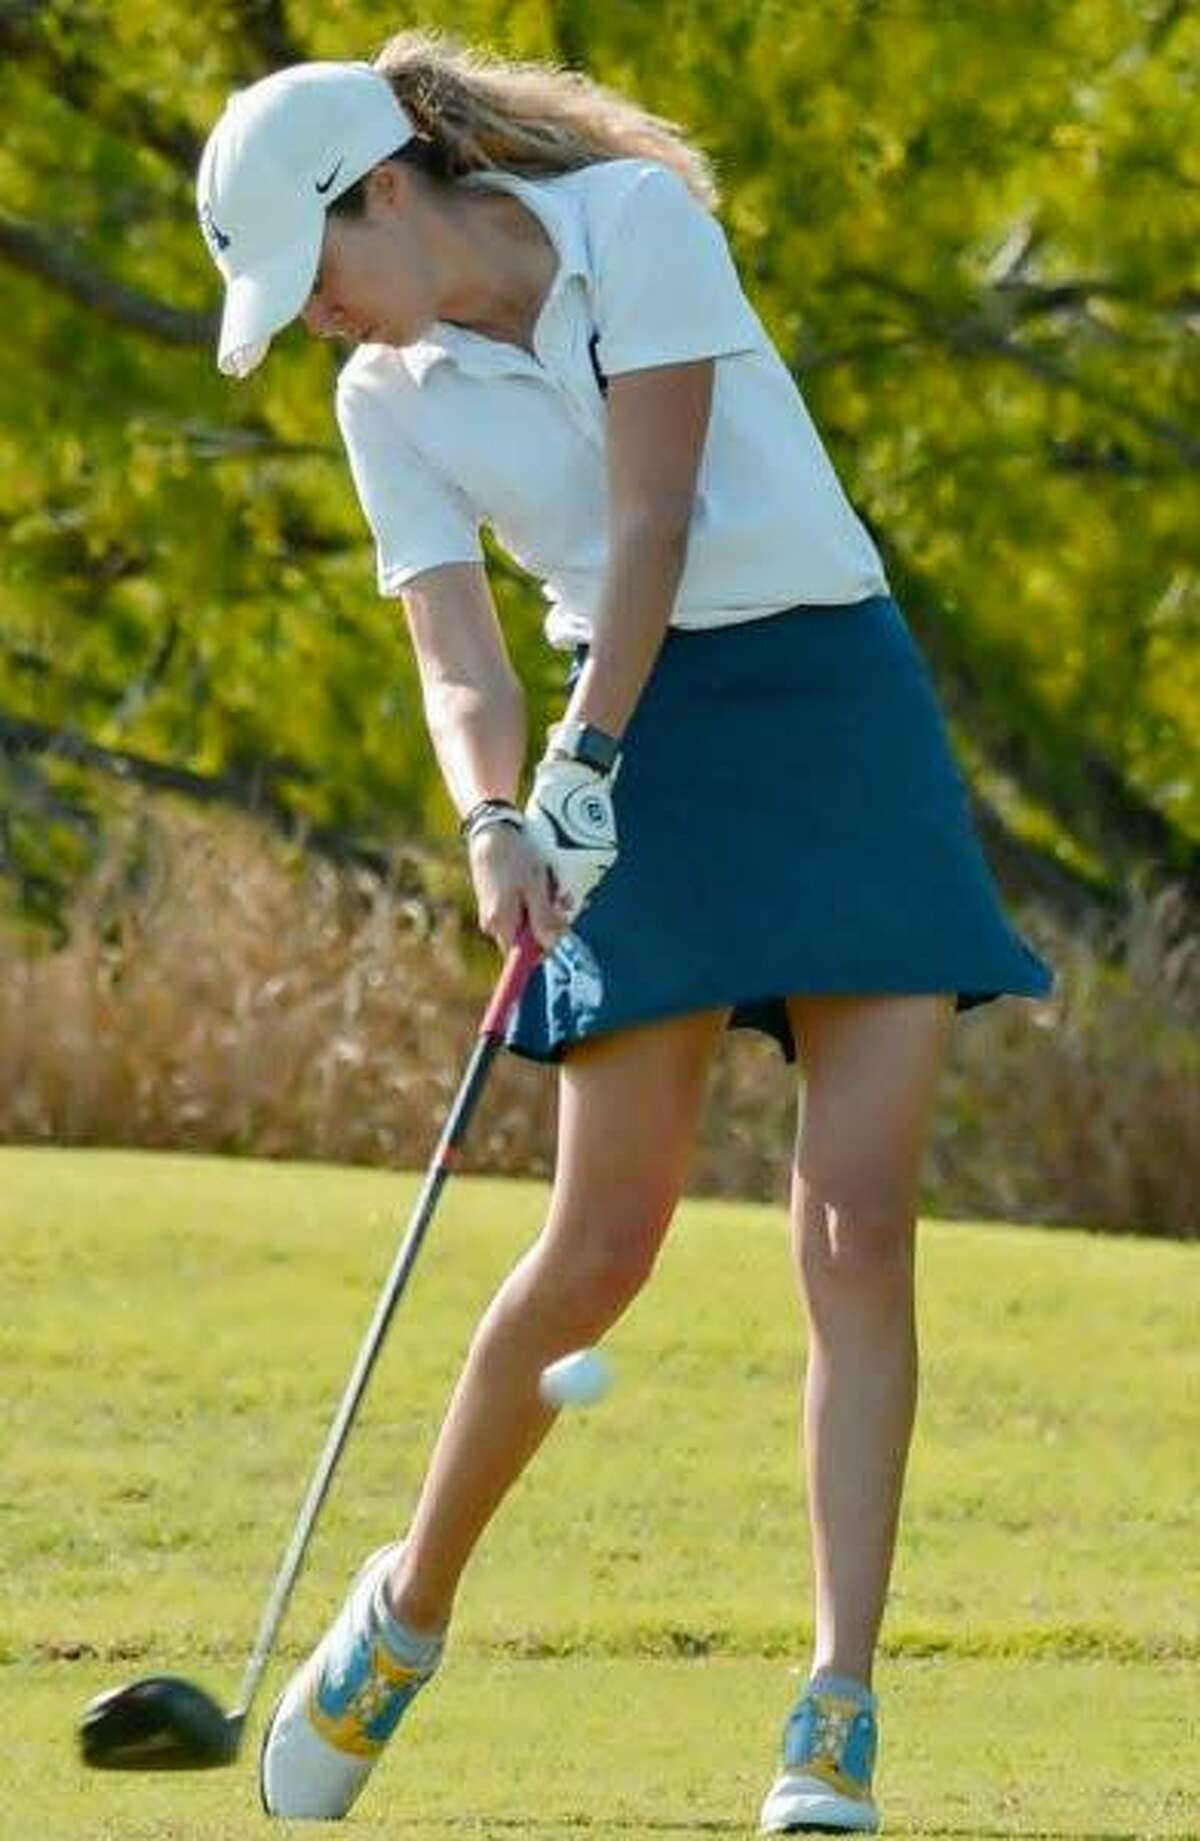 Catherine Flores is tied for 28th place and is nine strokes off the lead after opening the regional tournament with a round of 79 Monday in McAllen.